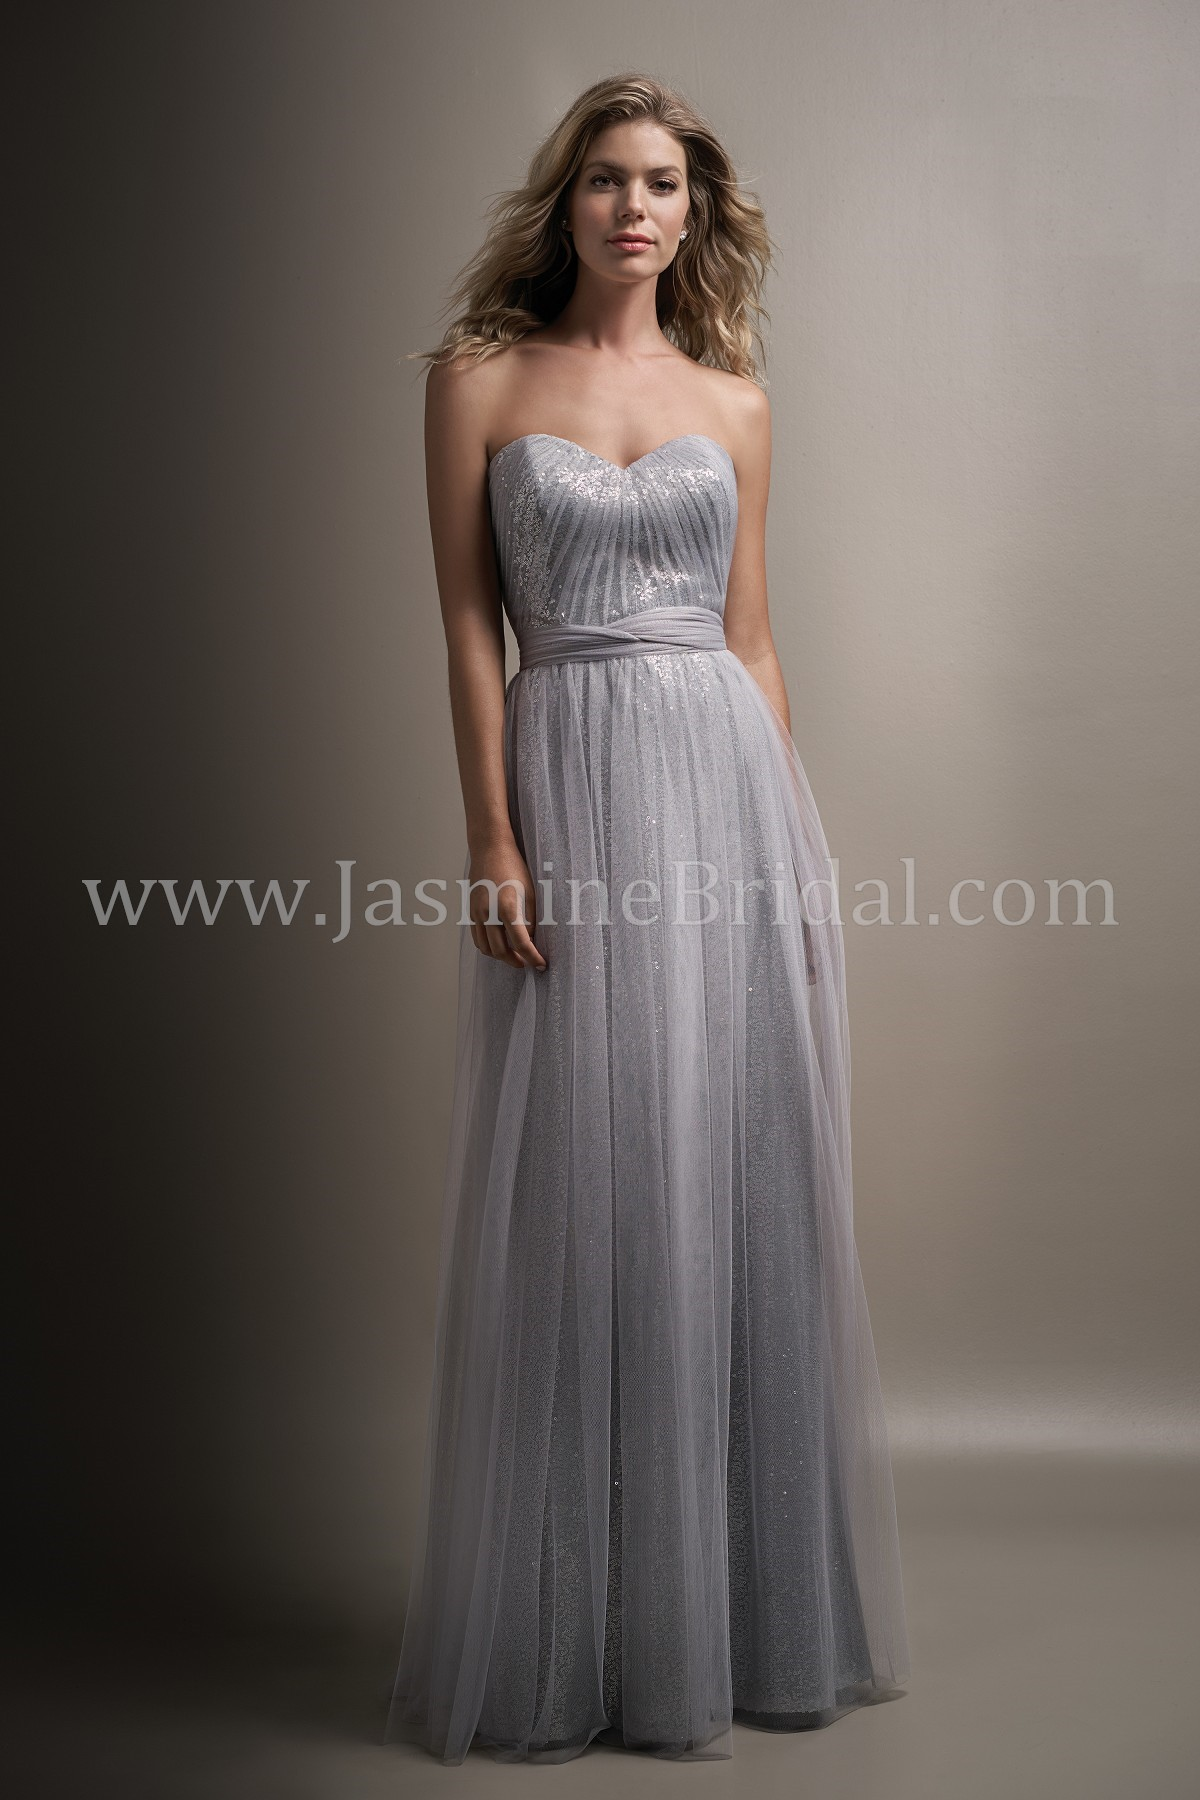 546d19dc5b L194007 Long Sweetheart Strapless Soft Tulle   Sequin Bridesmaid Dress